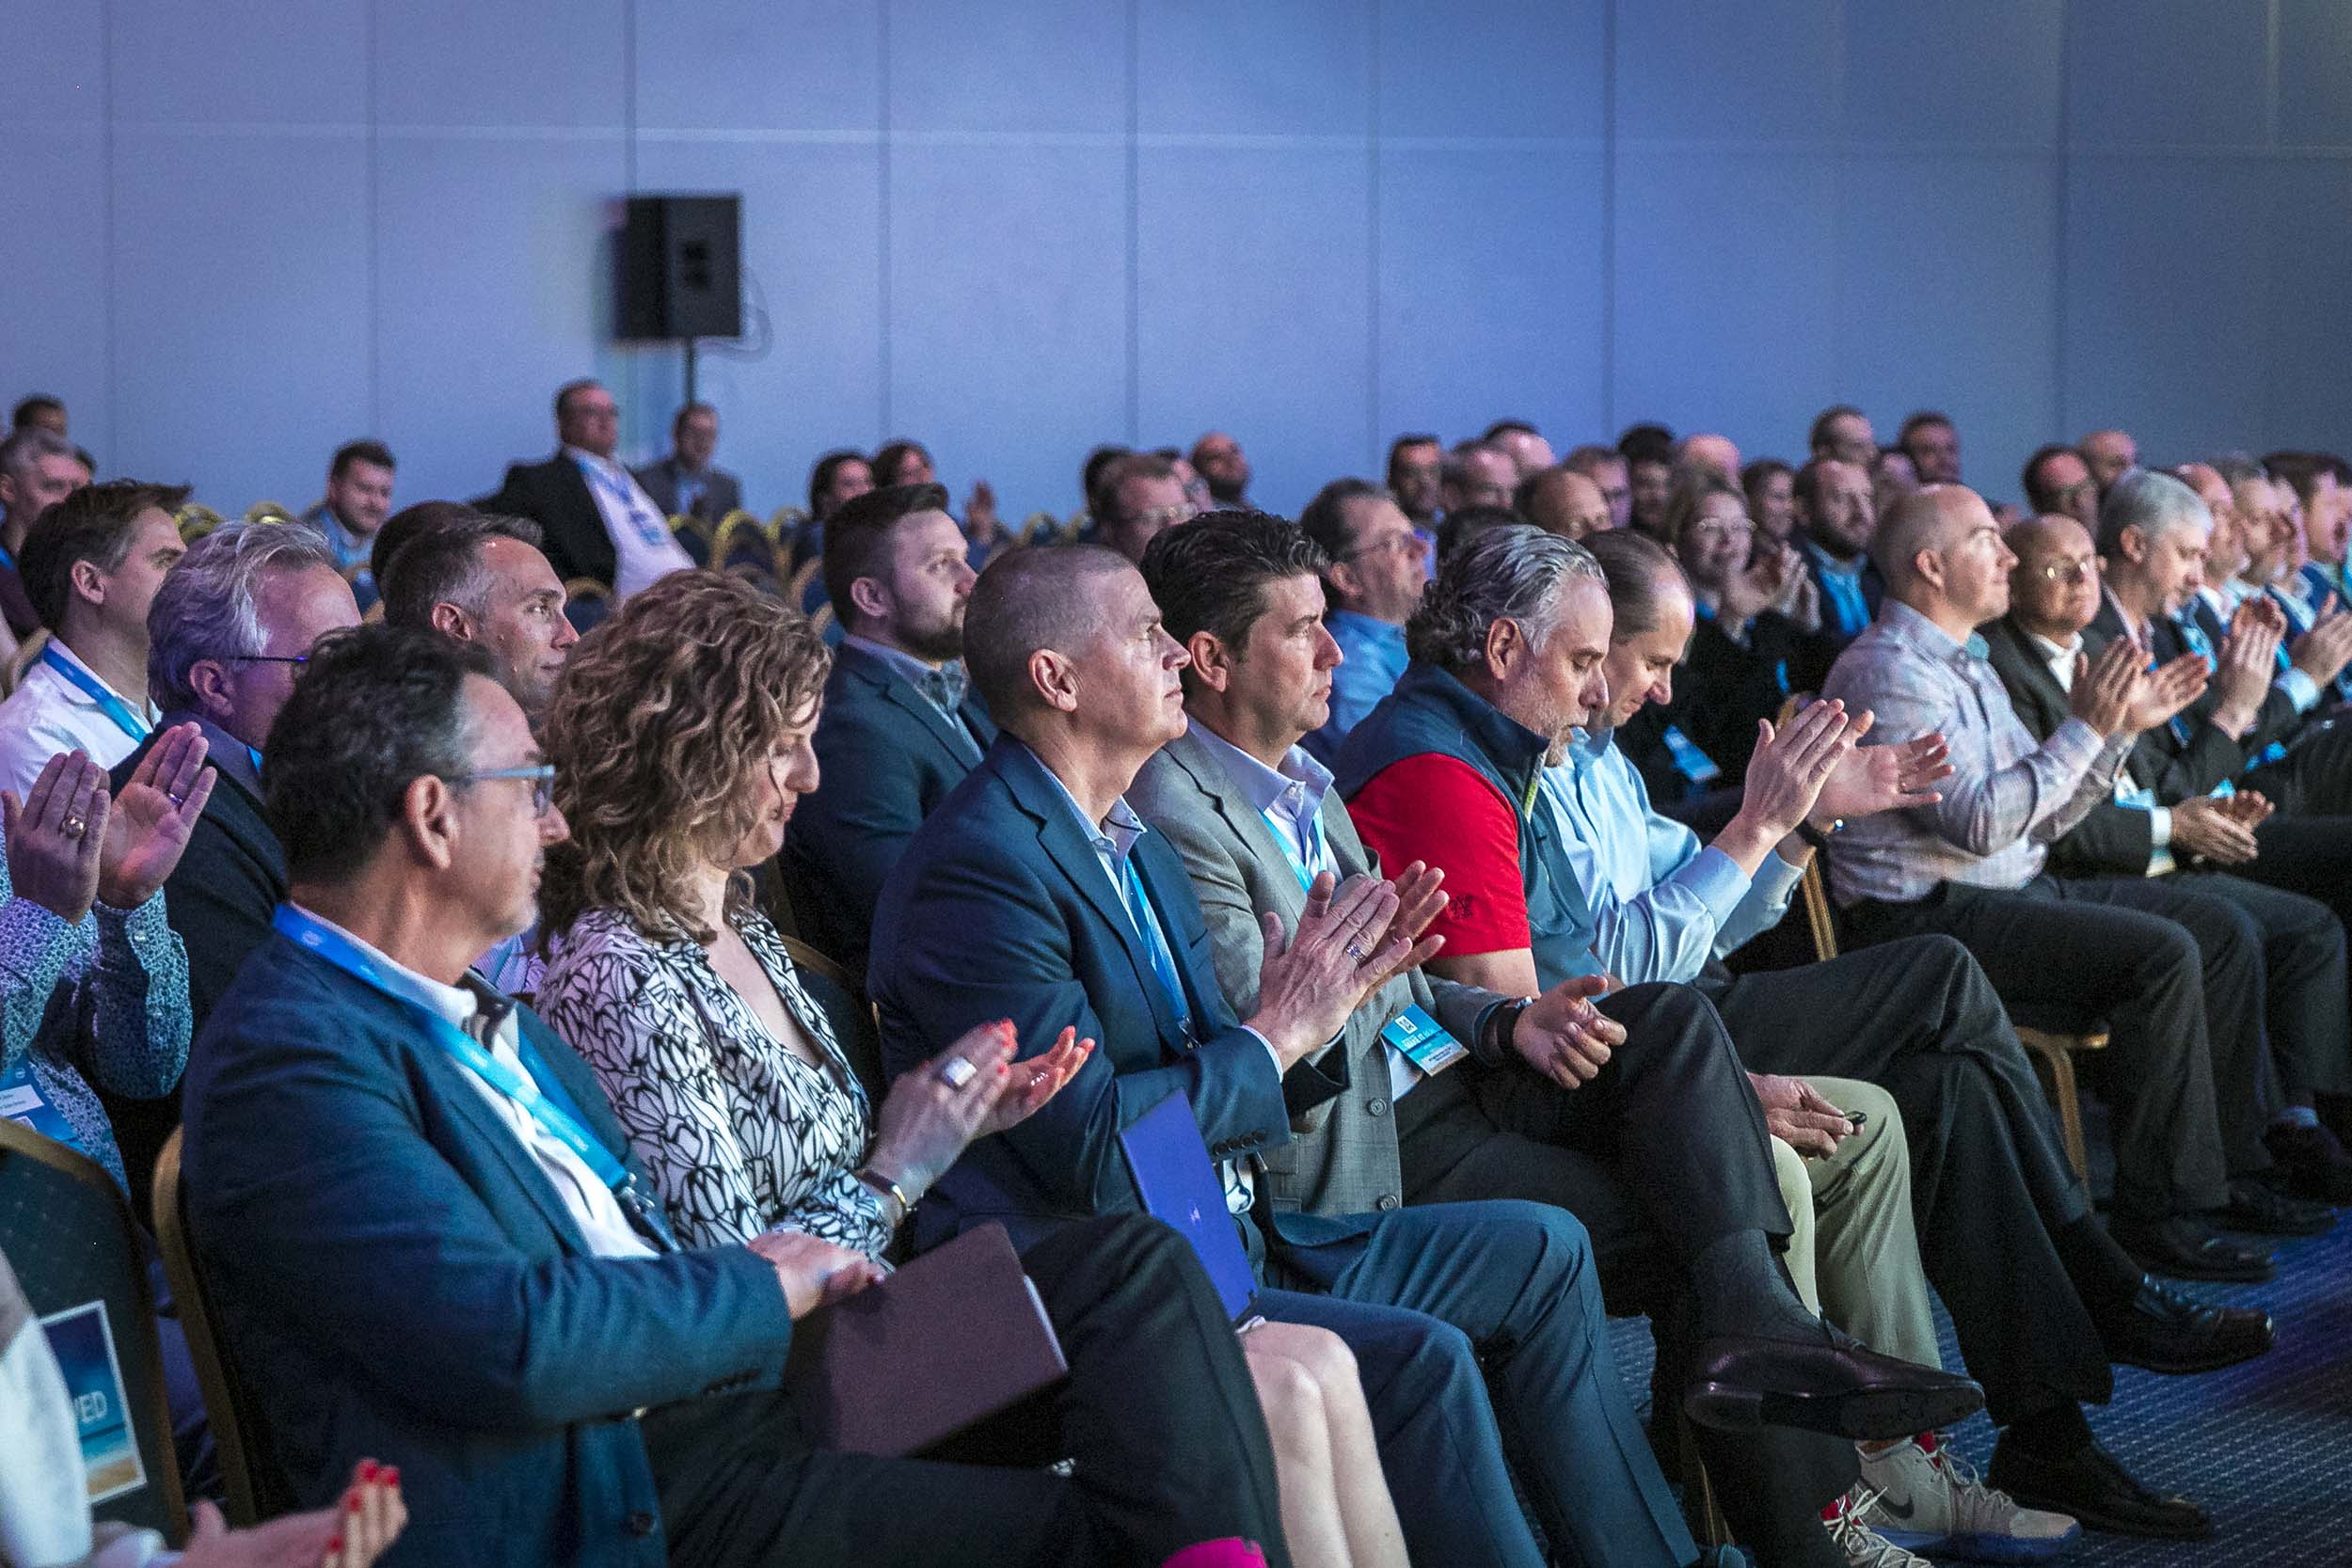 At a Glance - OrangeDoor delivered a conference for 400+pax in PortugalThe event app saw 90% engagement and over 15,000 viewsOvercame challenges including a power cut during the plenary, and the roof blowing off the gala dinner venue